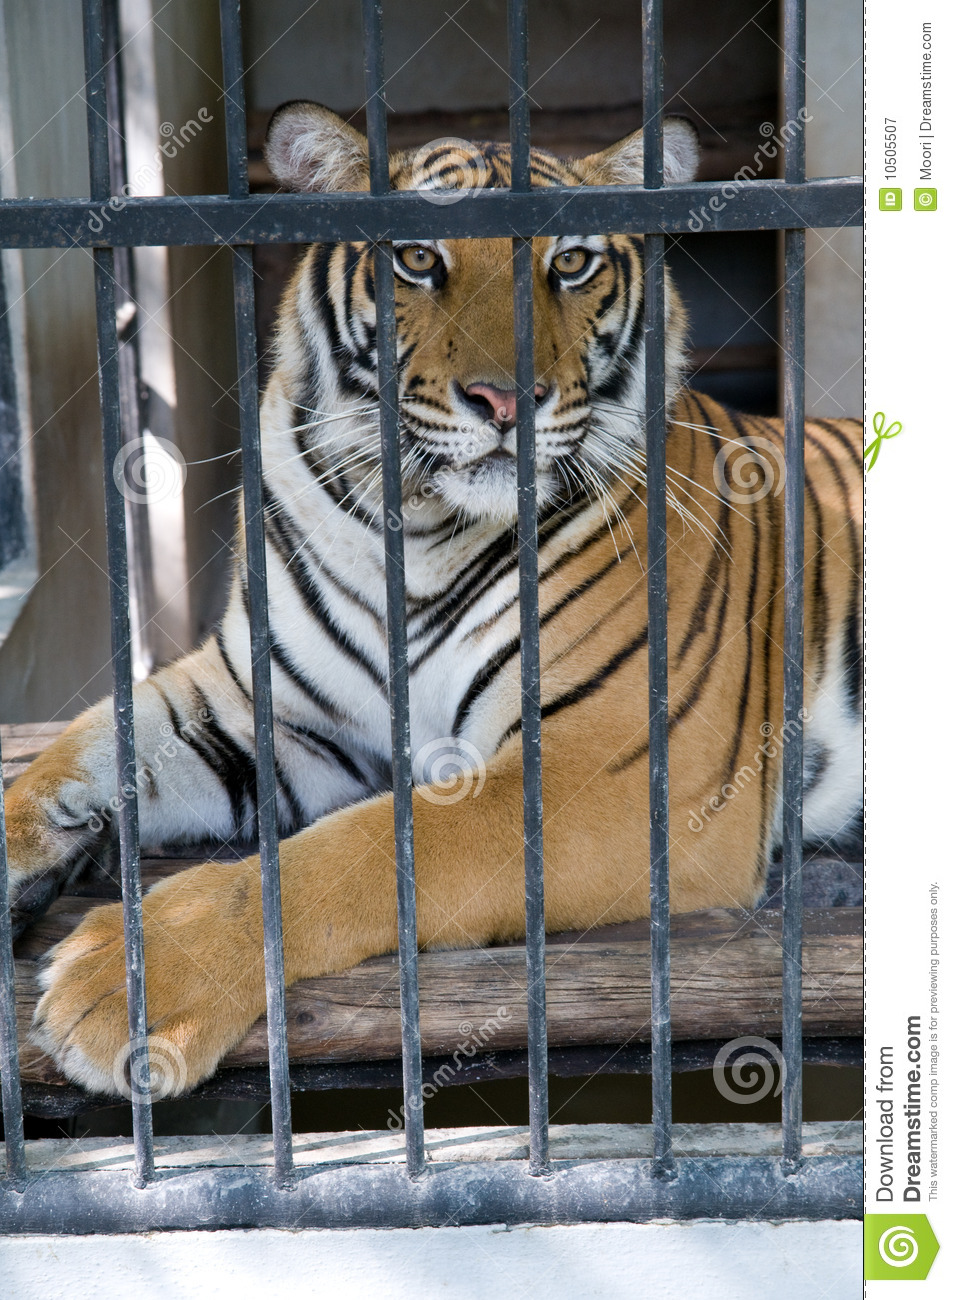 Caged tiger stock image image of caged prisoner animal 10505507 - Tiger in cage images ...